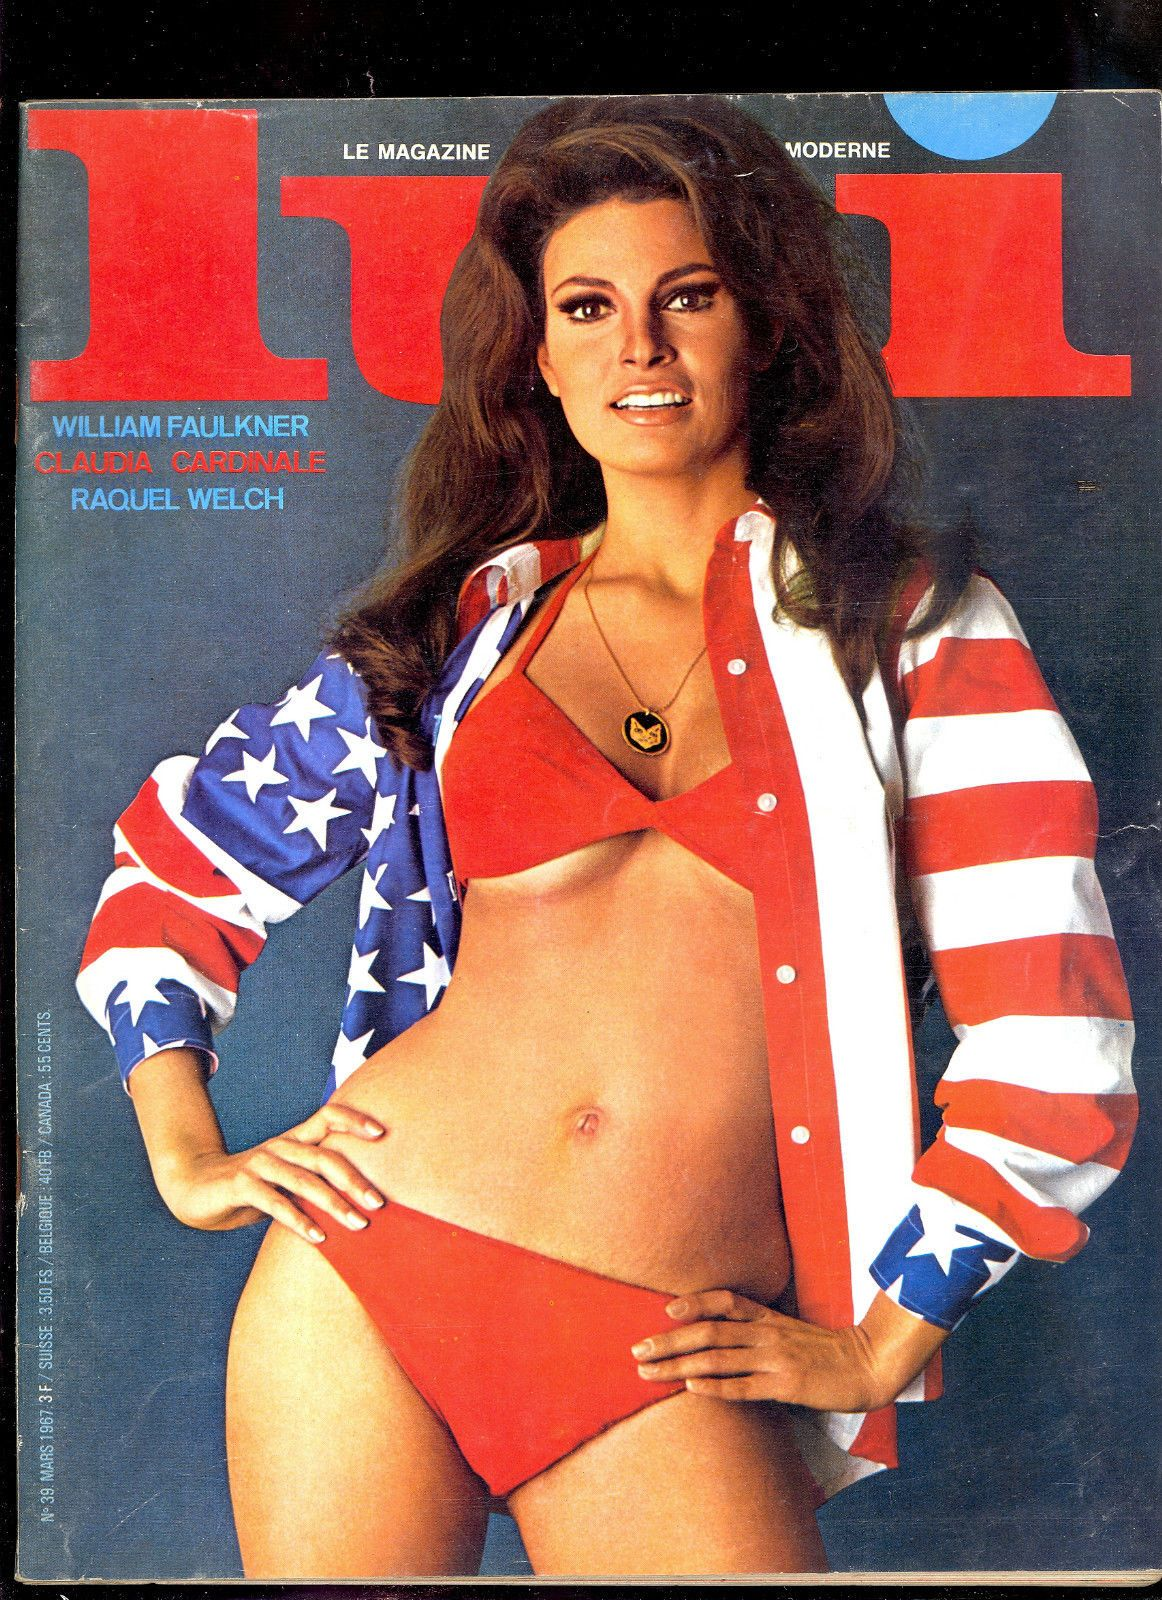 Raquel welch on the cover of lui 1967